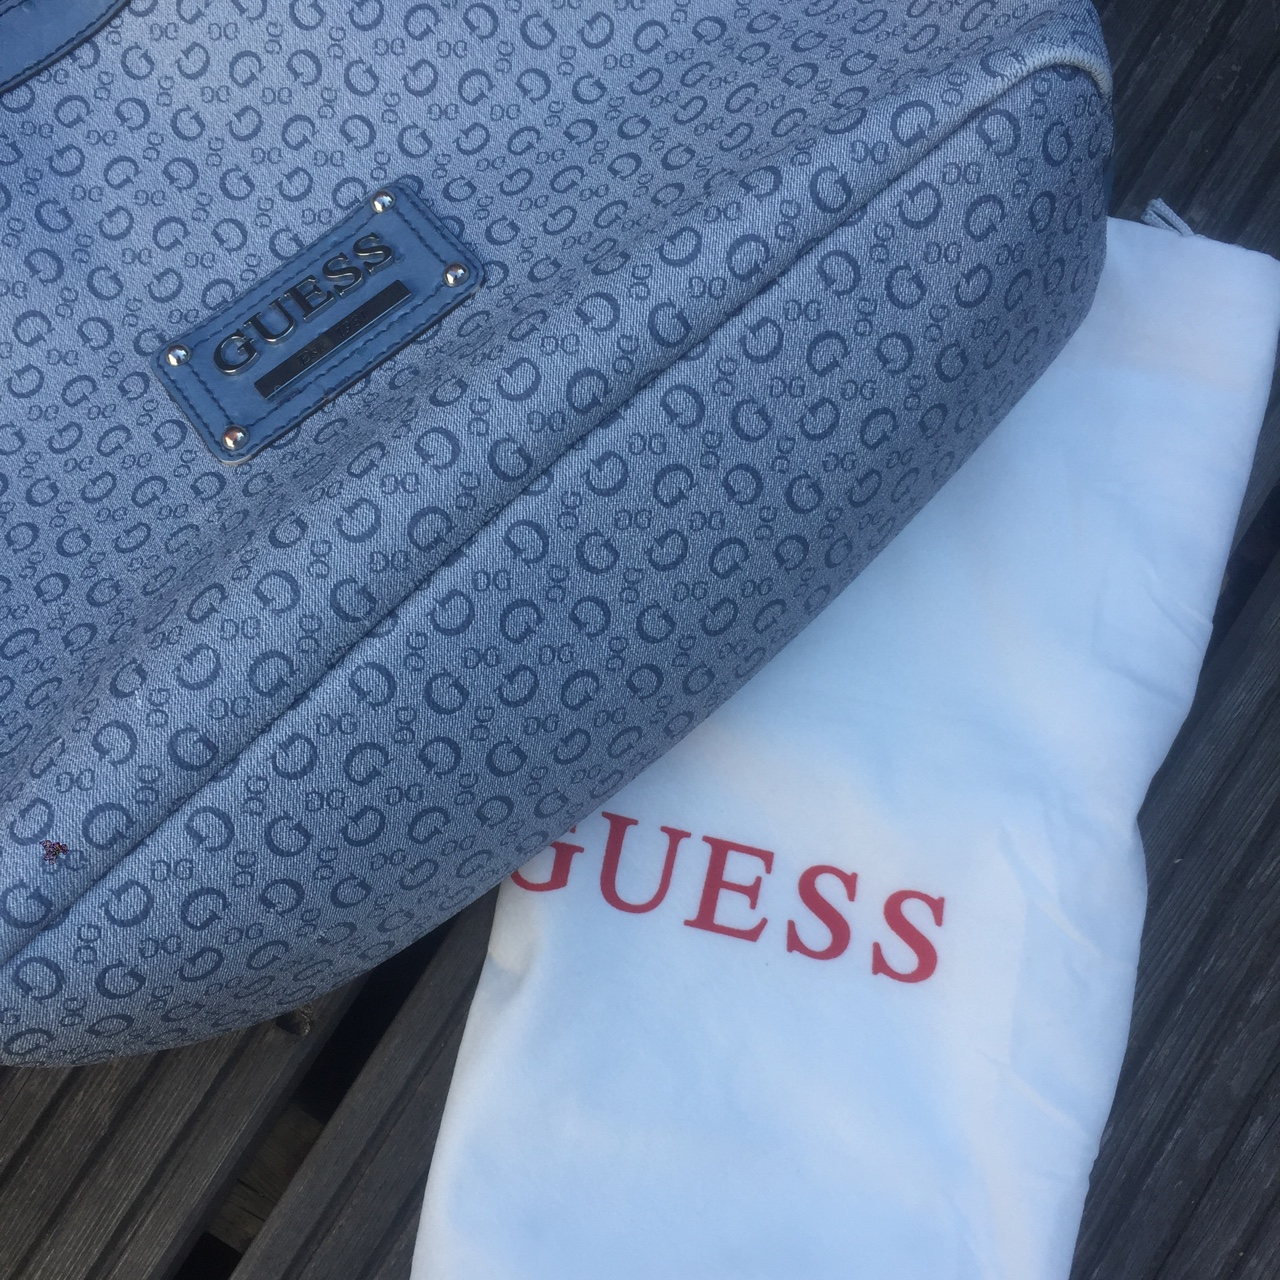 Vintage Guess Bag (Shopper Tote) • Used condition Depop